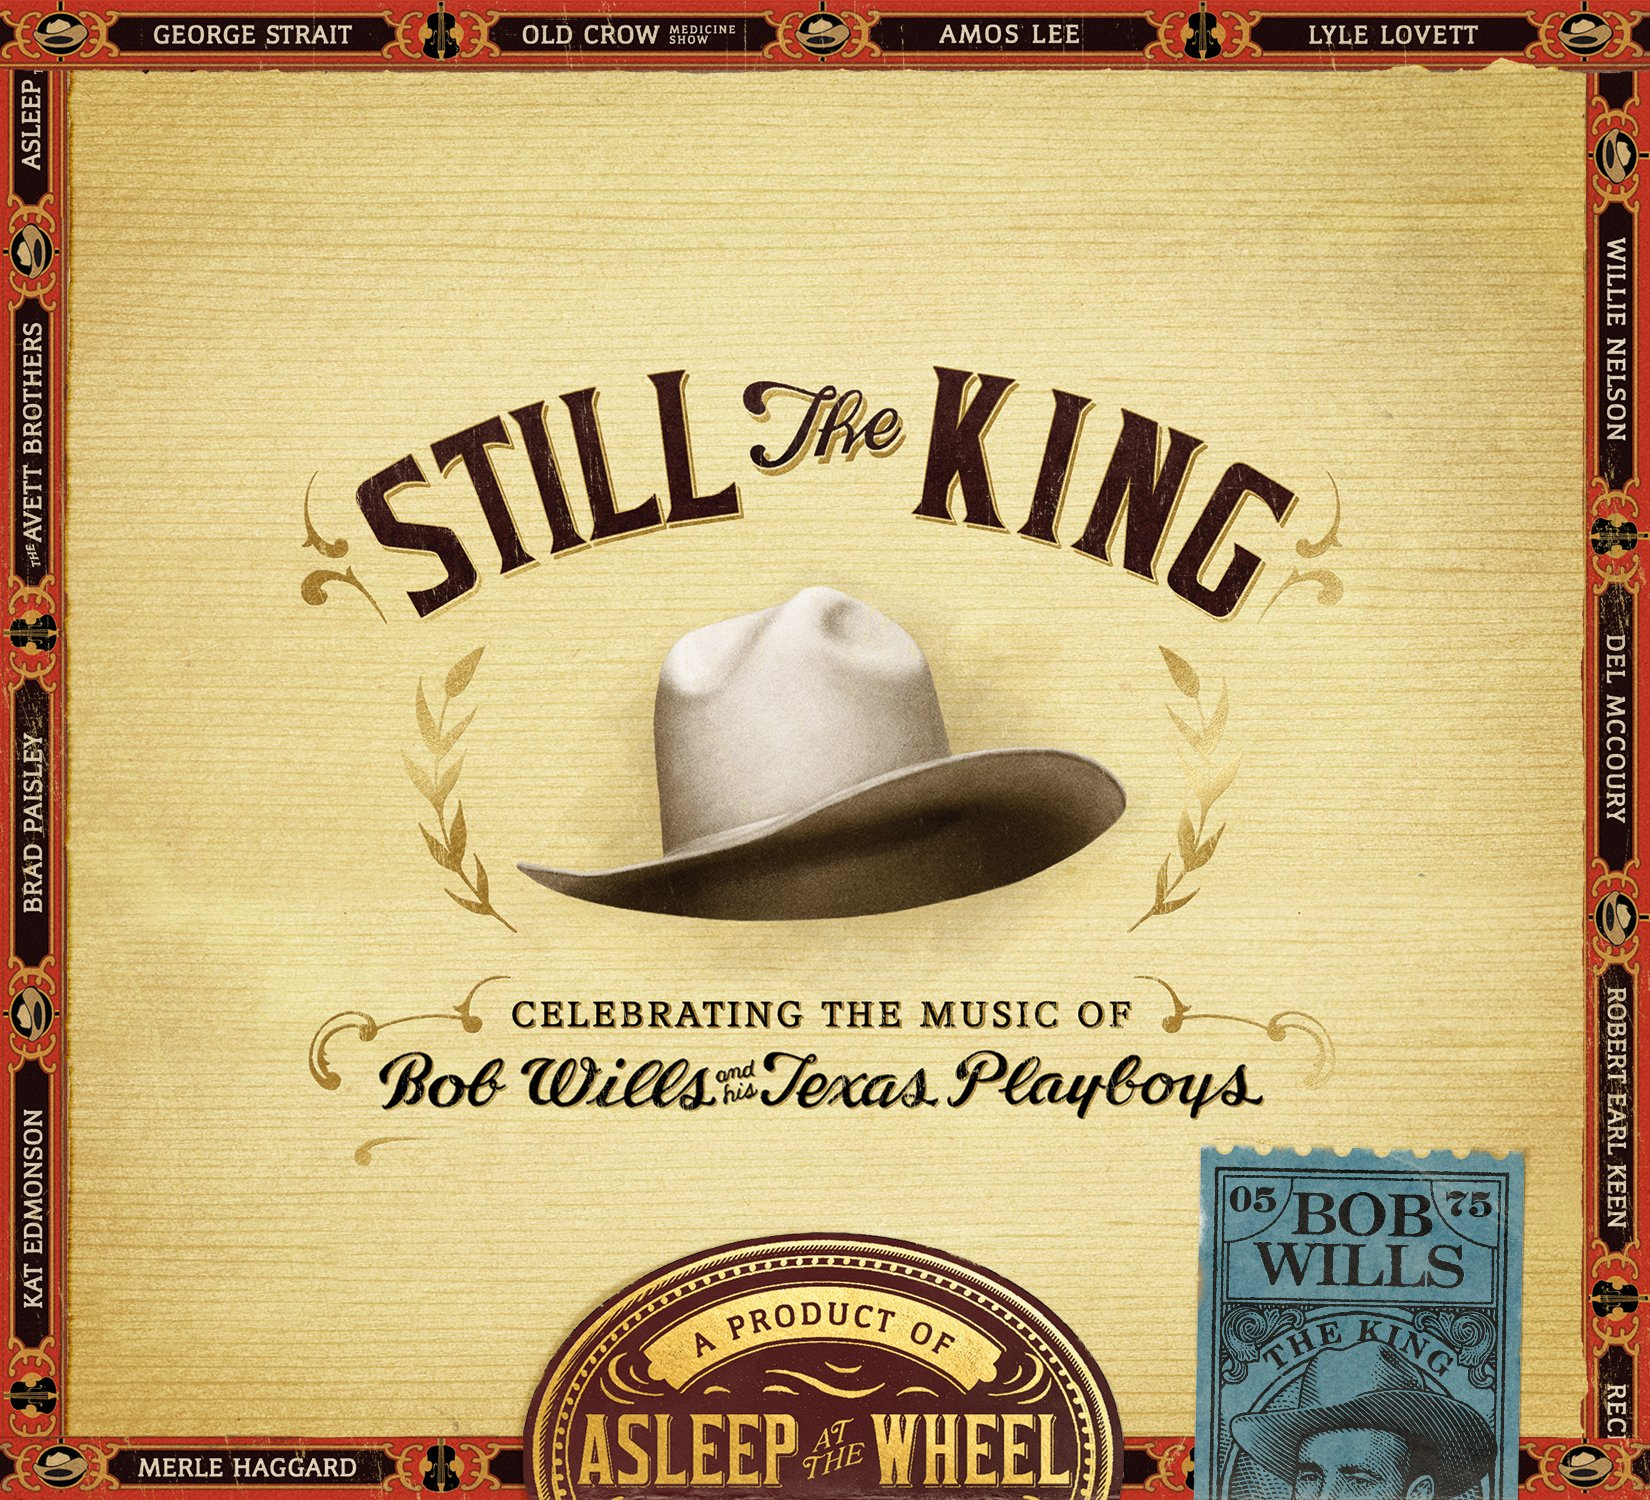 Still the King: Celebrating the Music of Bob Wills and His Texas Playboys (Embossed CD package, contains 20 page booklet)